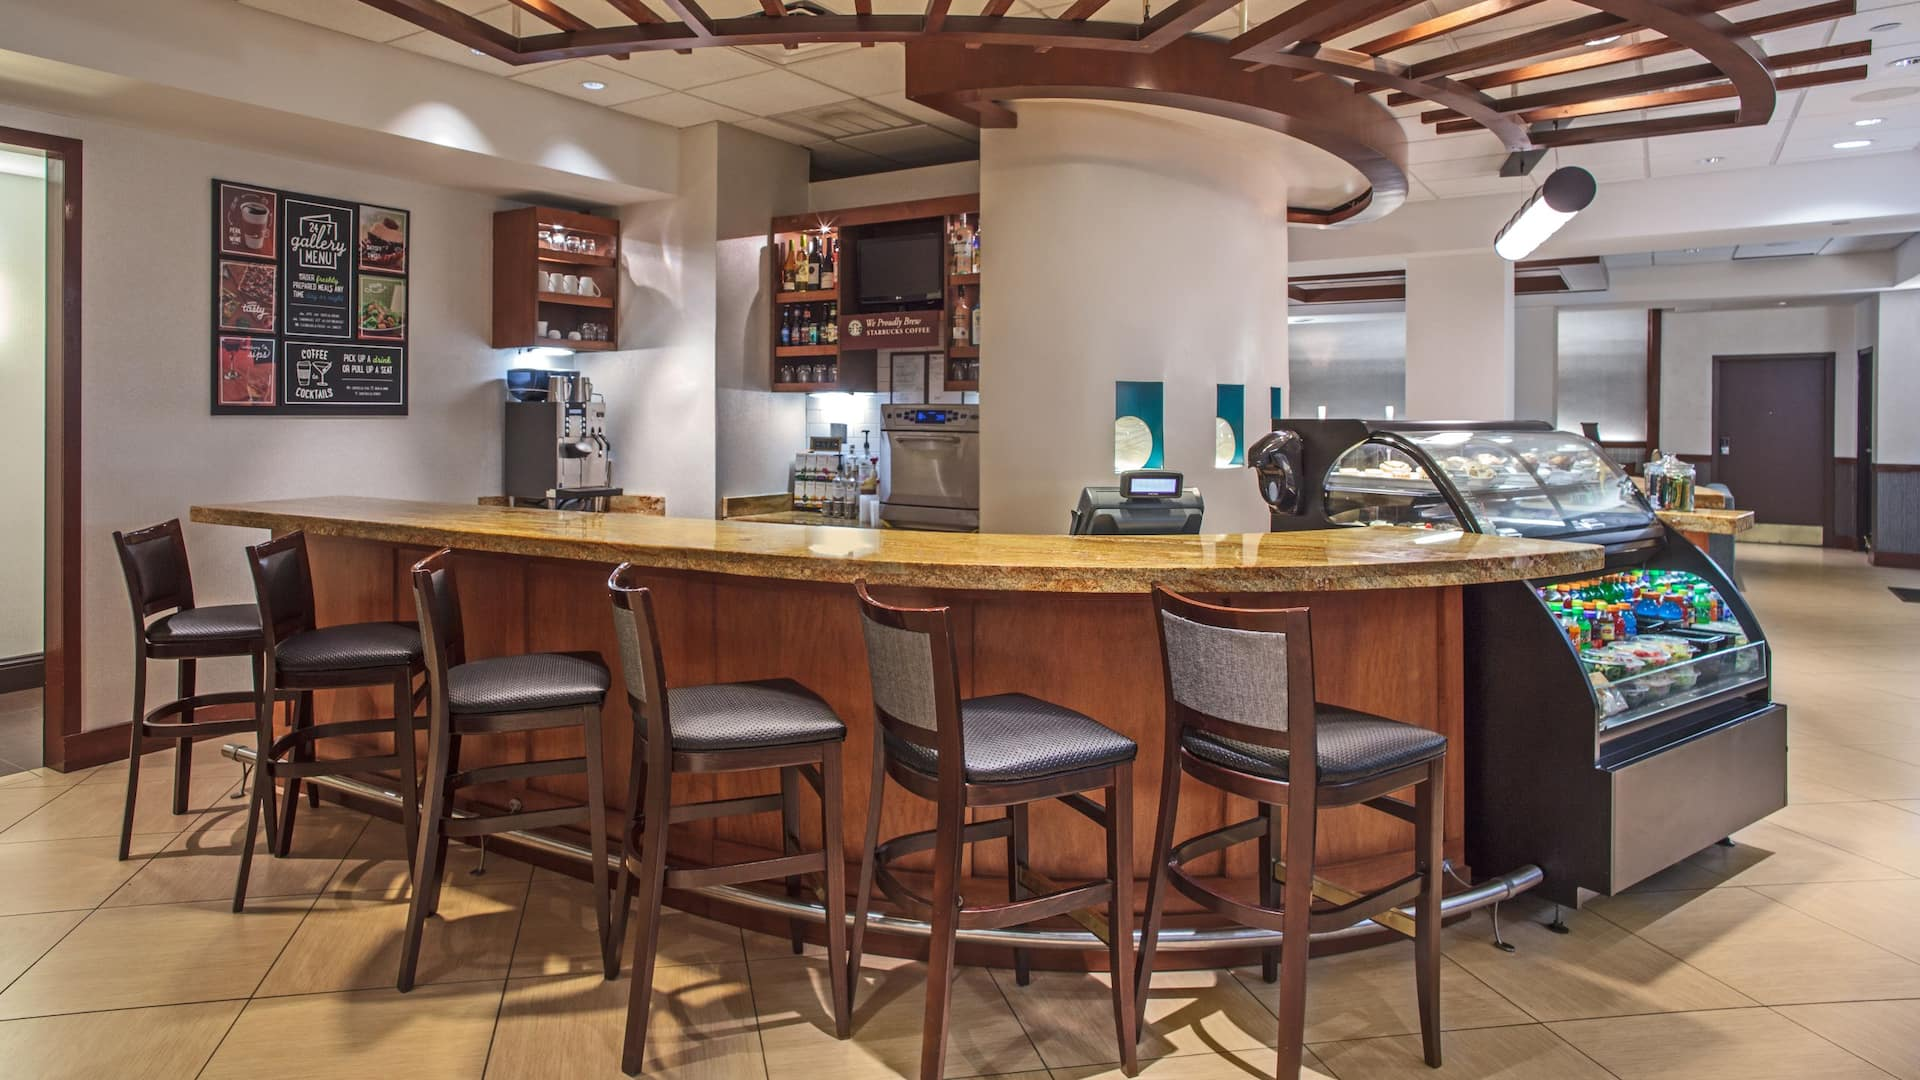 Hyatt Place Cincinnati / Blue Ash Lobby Bar